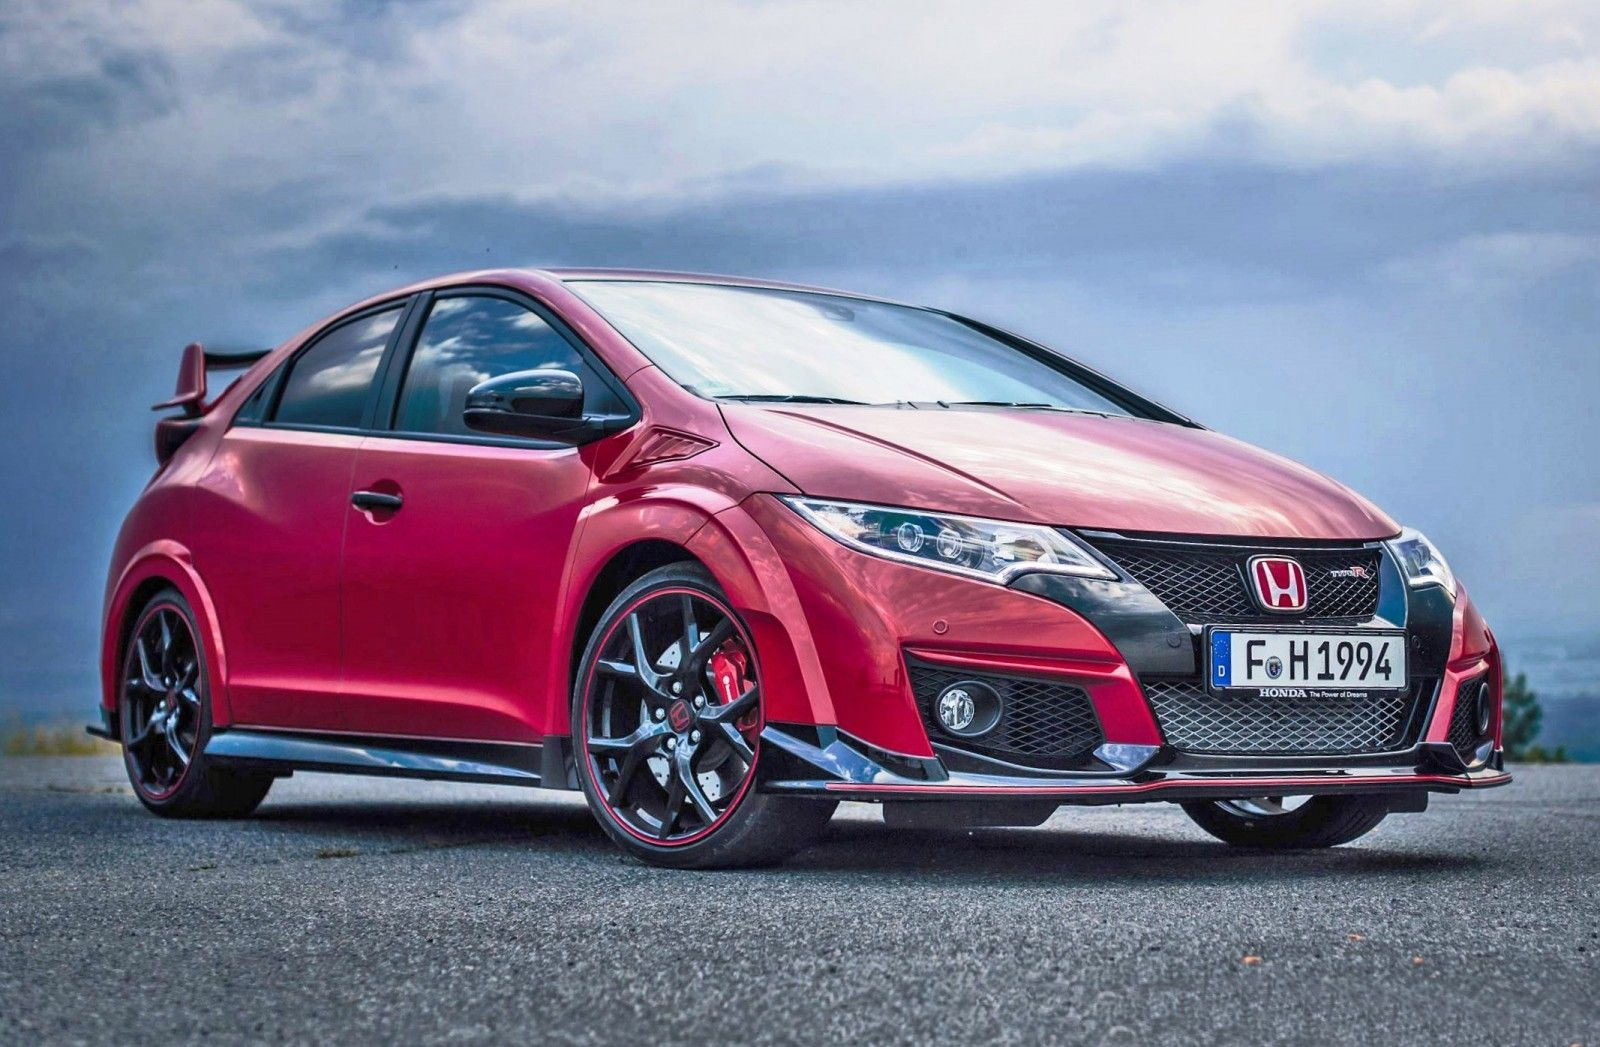 2015 Honda Civic Type R European Launch Gallery in 104